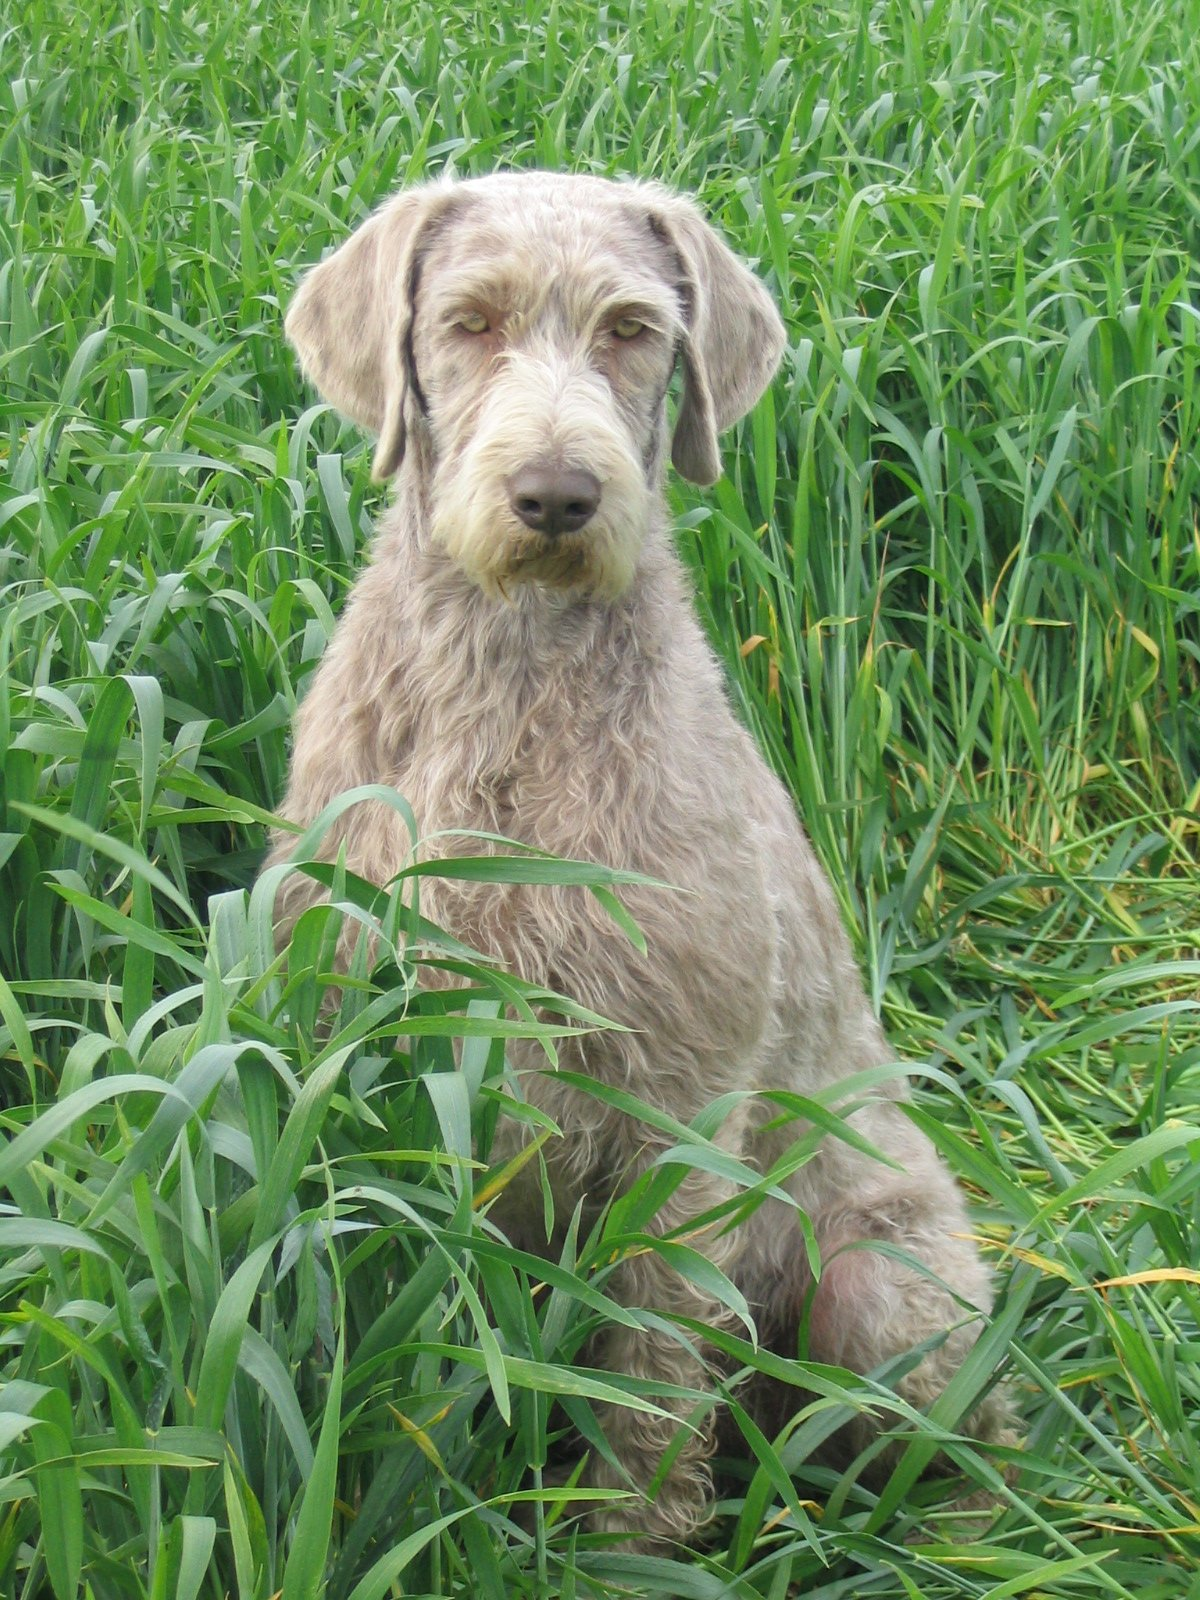 Slovak Rough-haired Pointer - Wikipedia